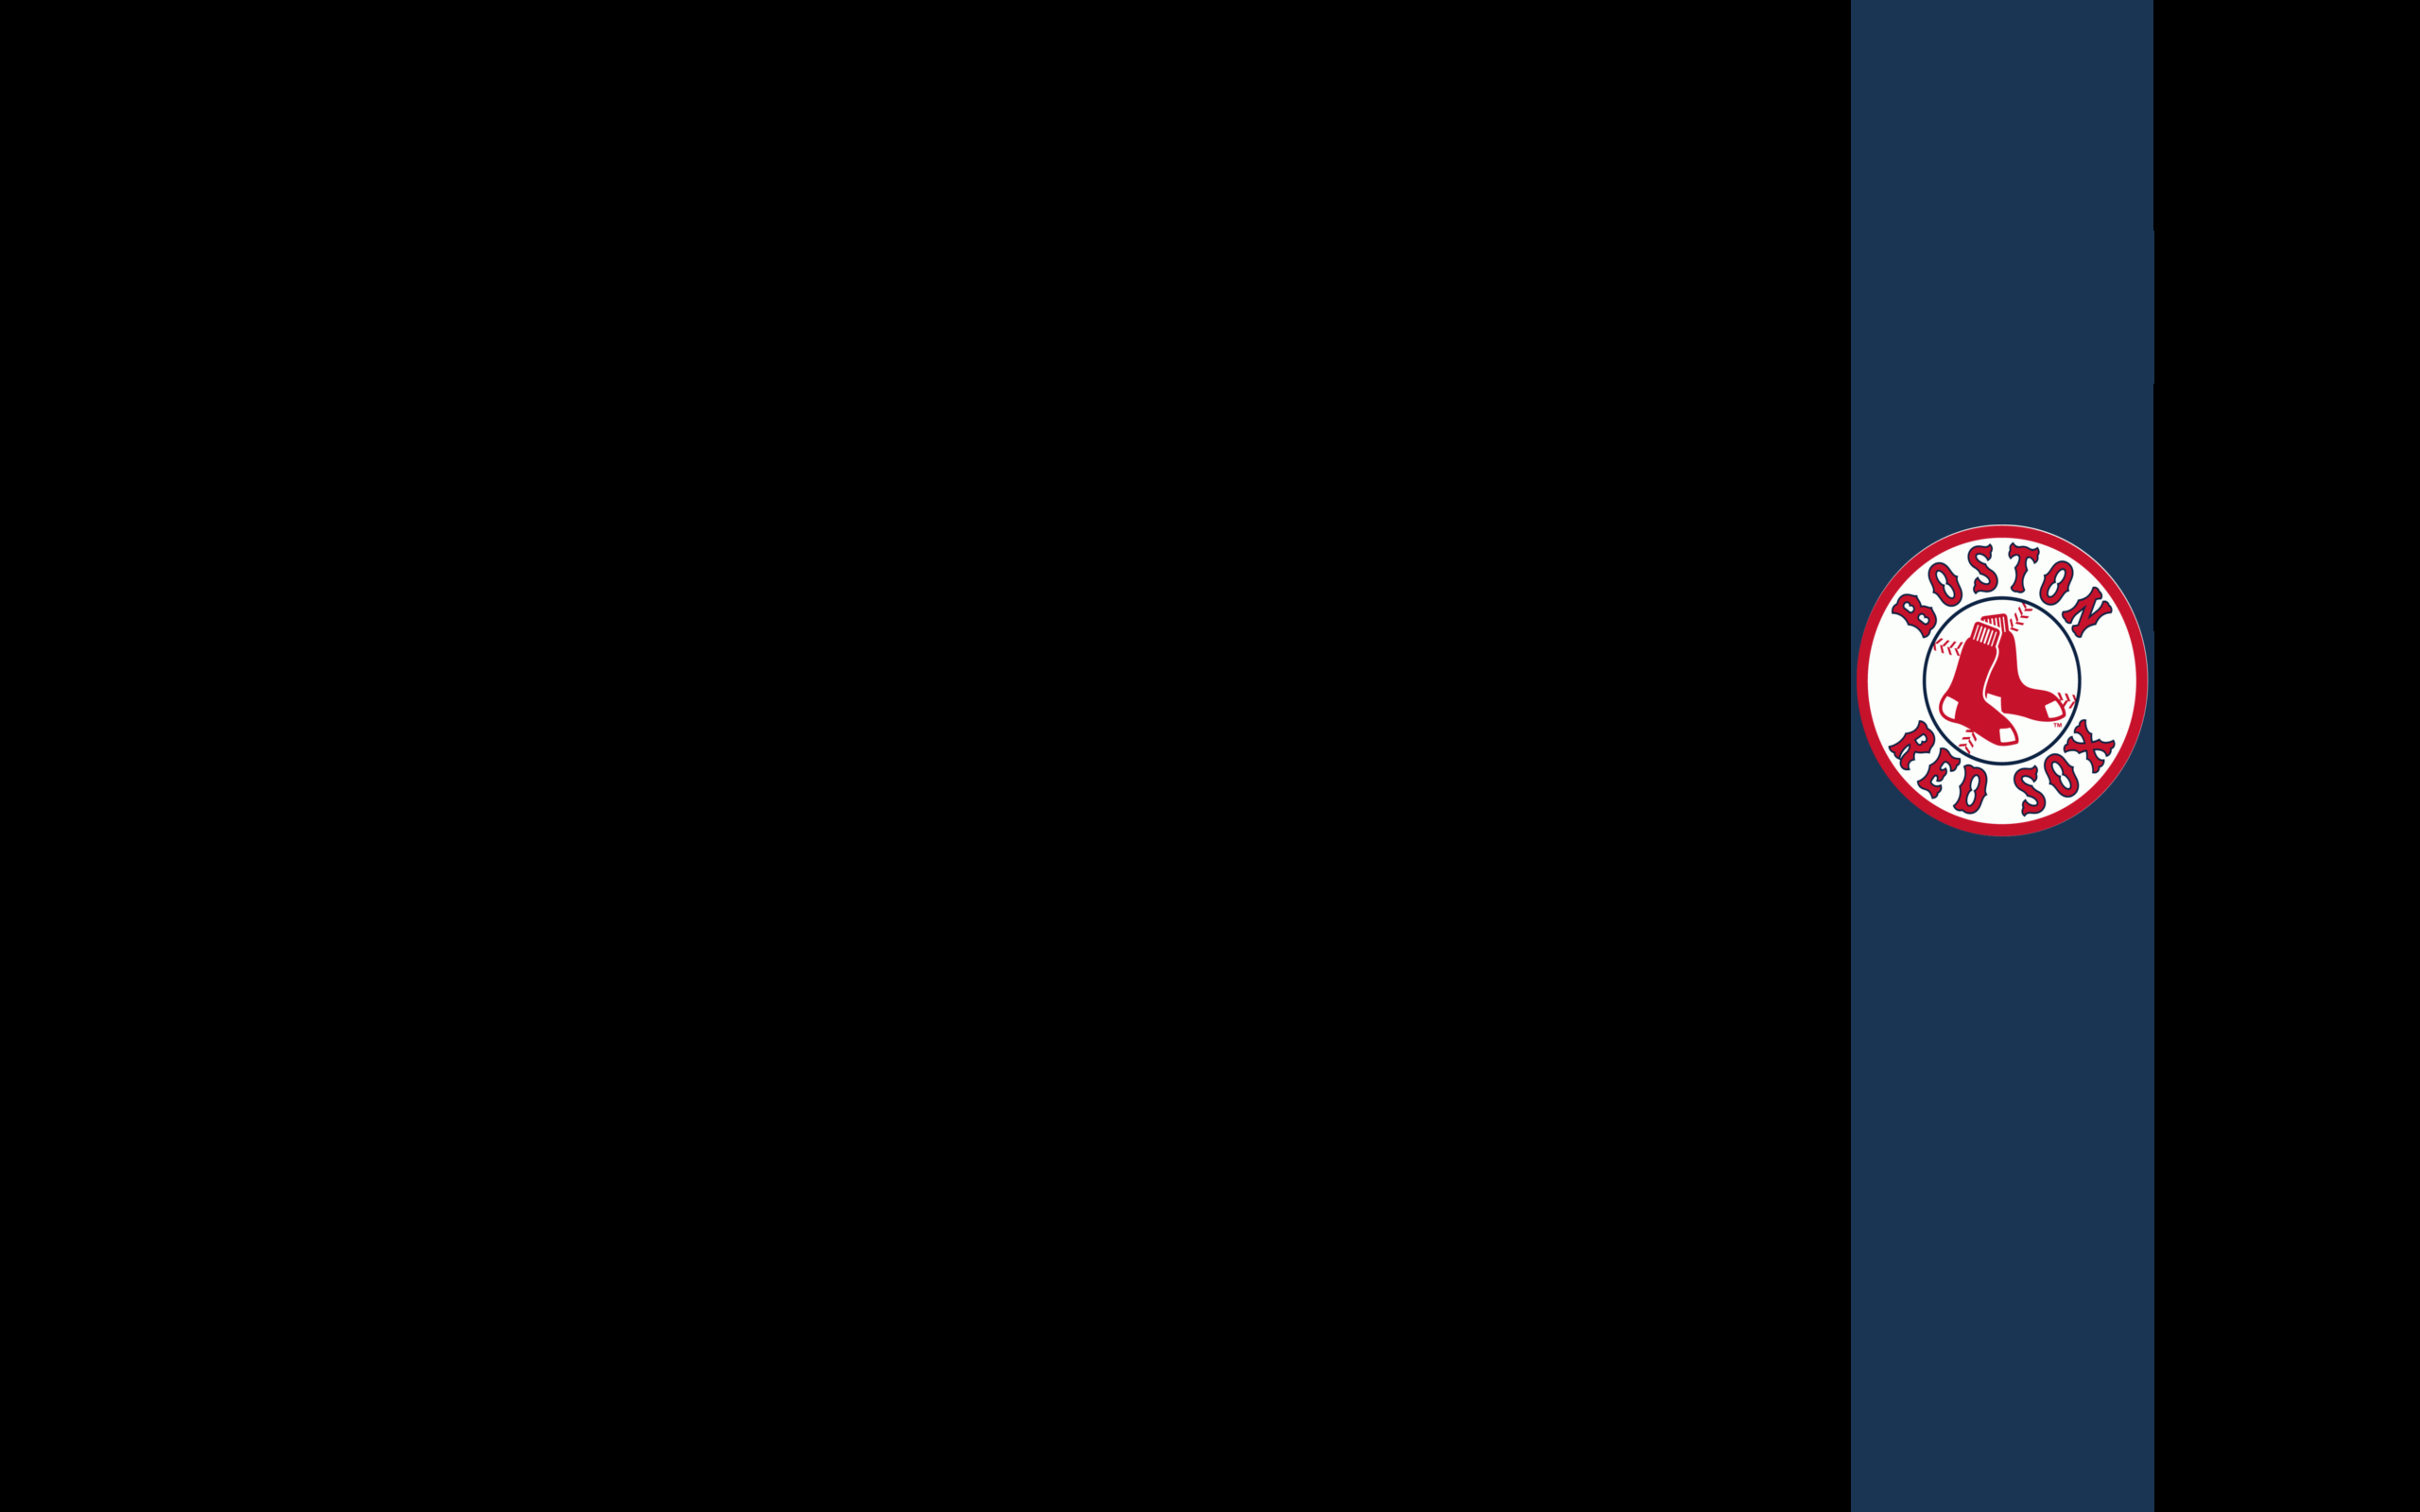 boston red sox logo wallpaper hd 1920x1080 Car Pictures 2560x1600